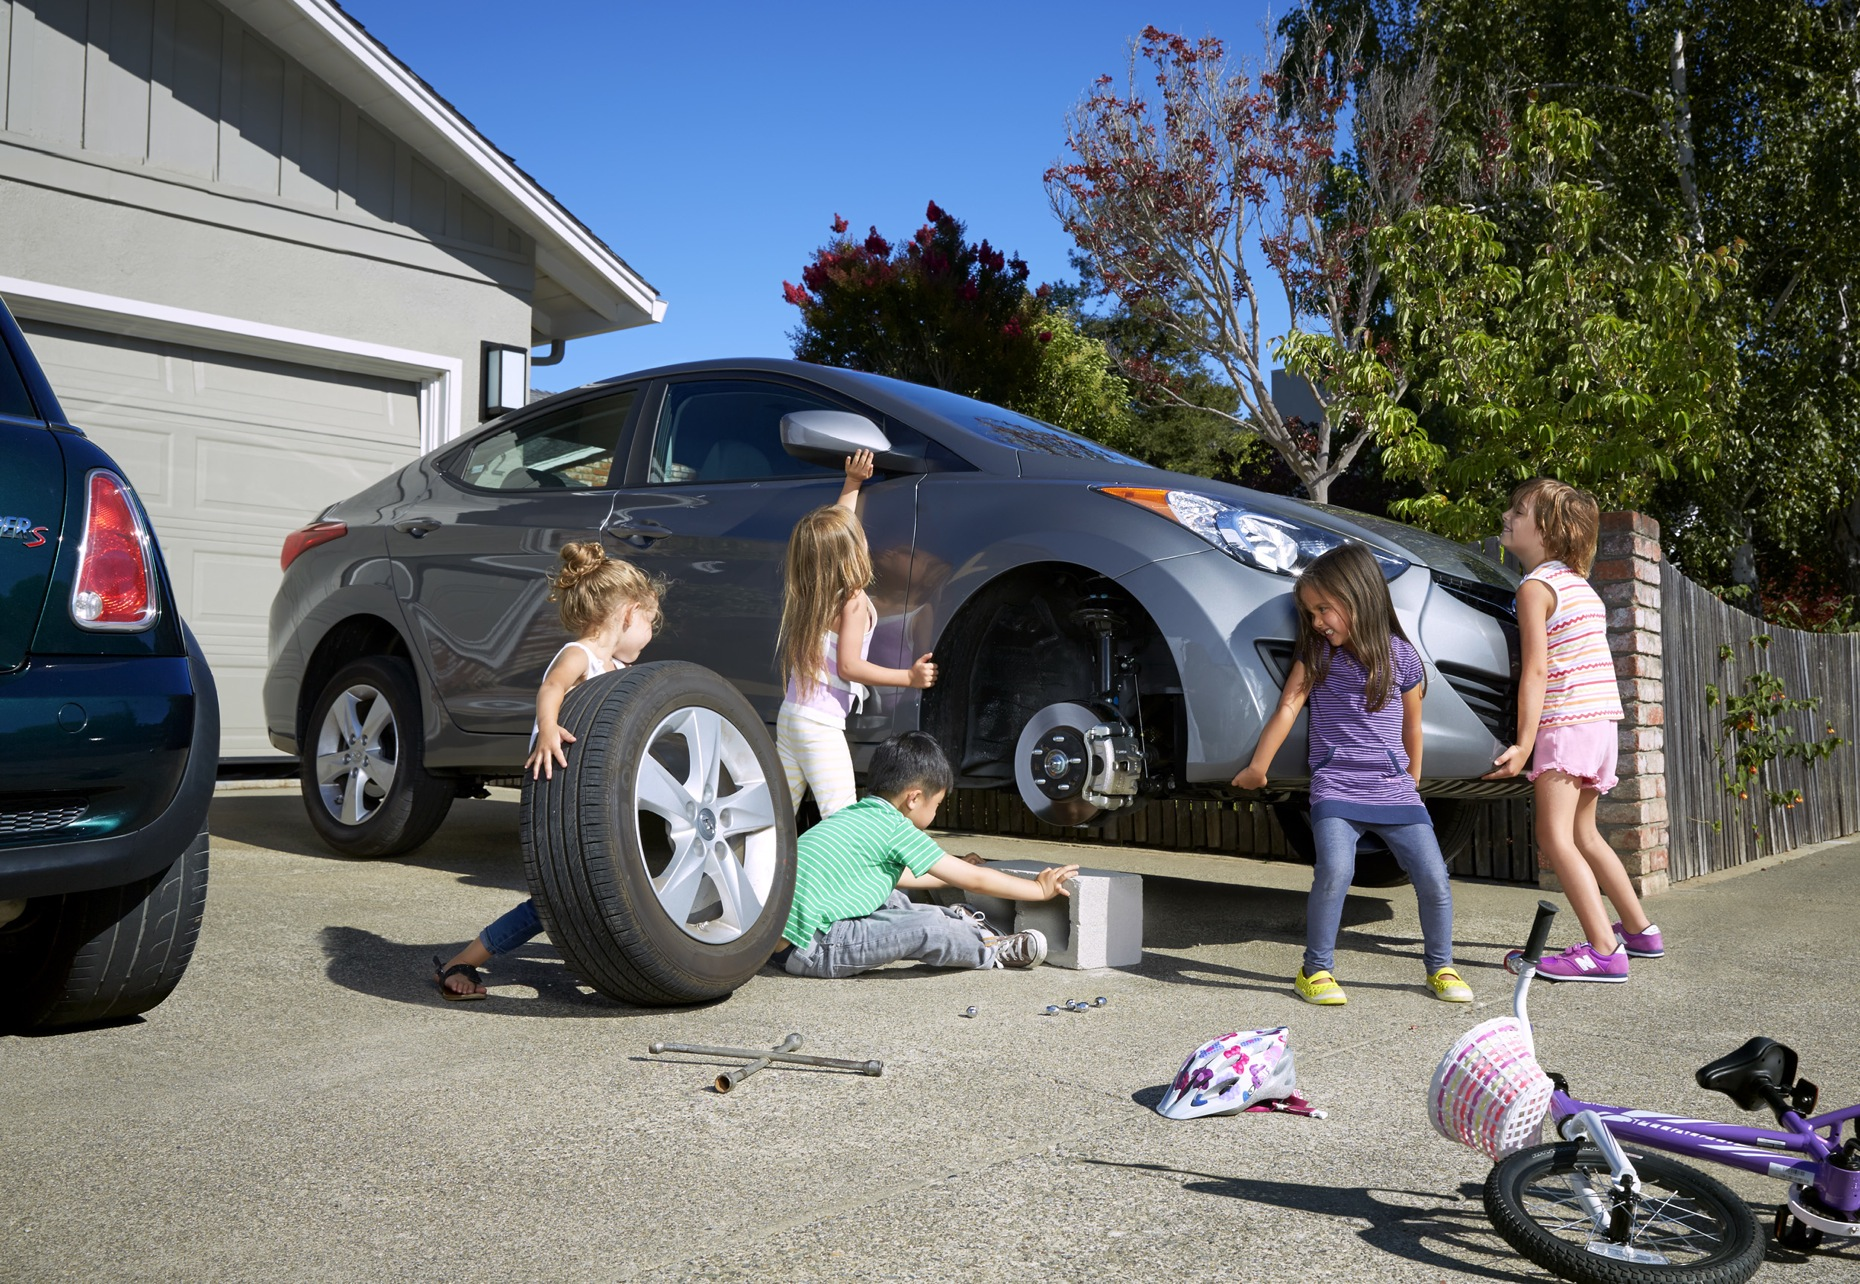 HFREEMAN_Kids_Lifting_Car_070_w10_fltnd_RGB_v2.jpg